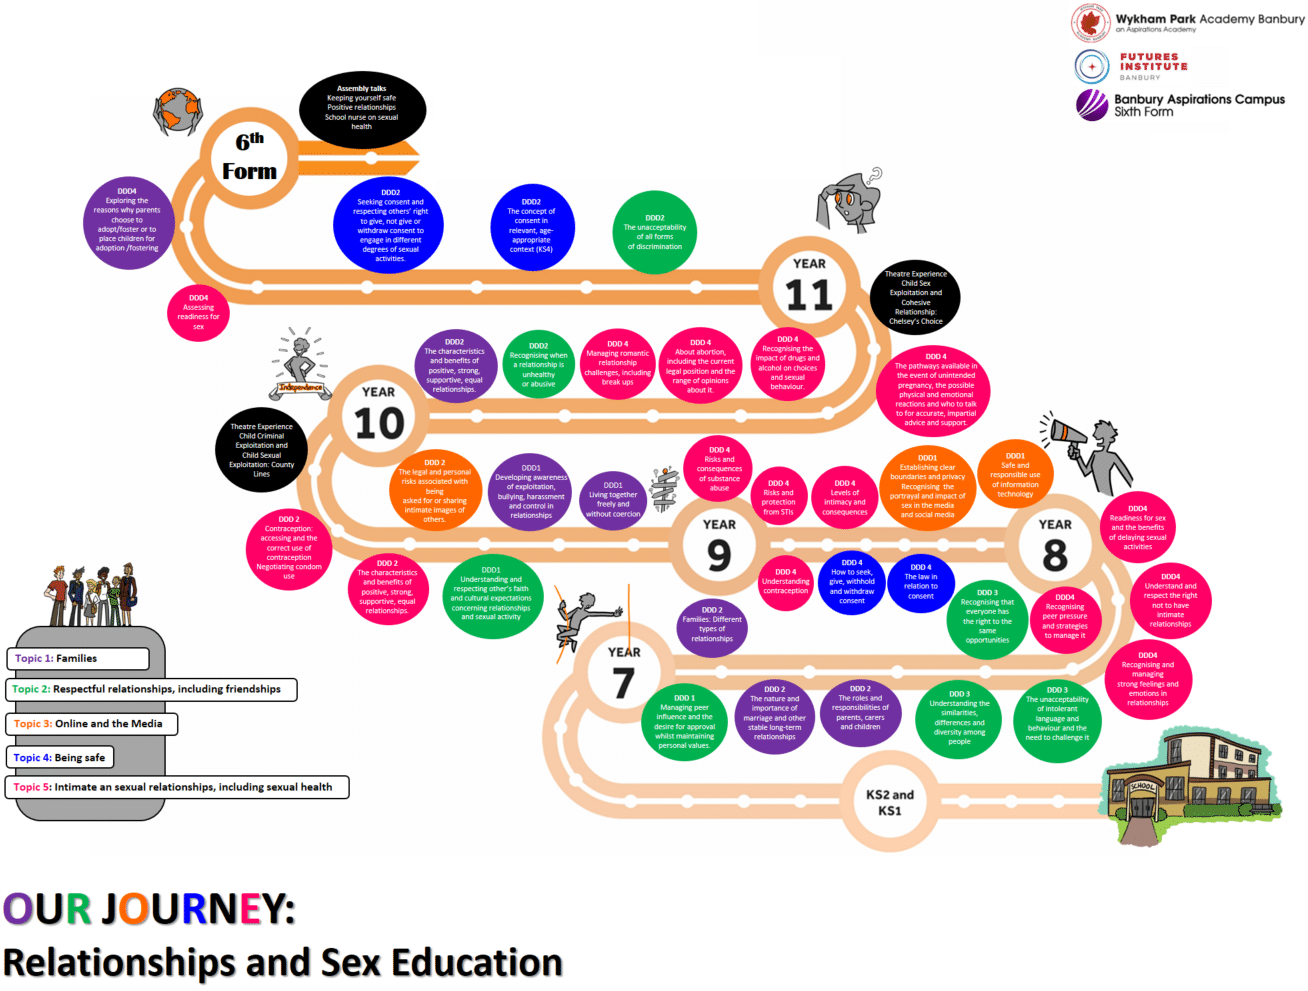 Relationships and Sex Education